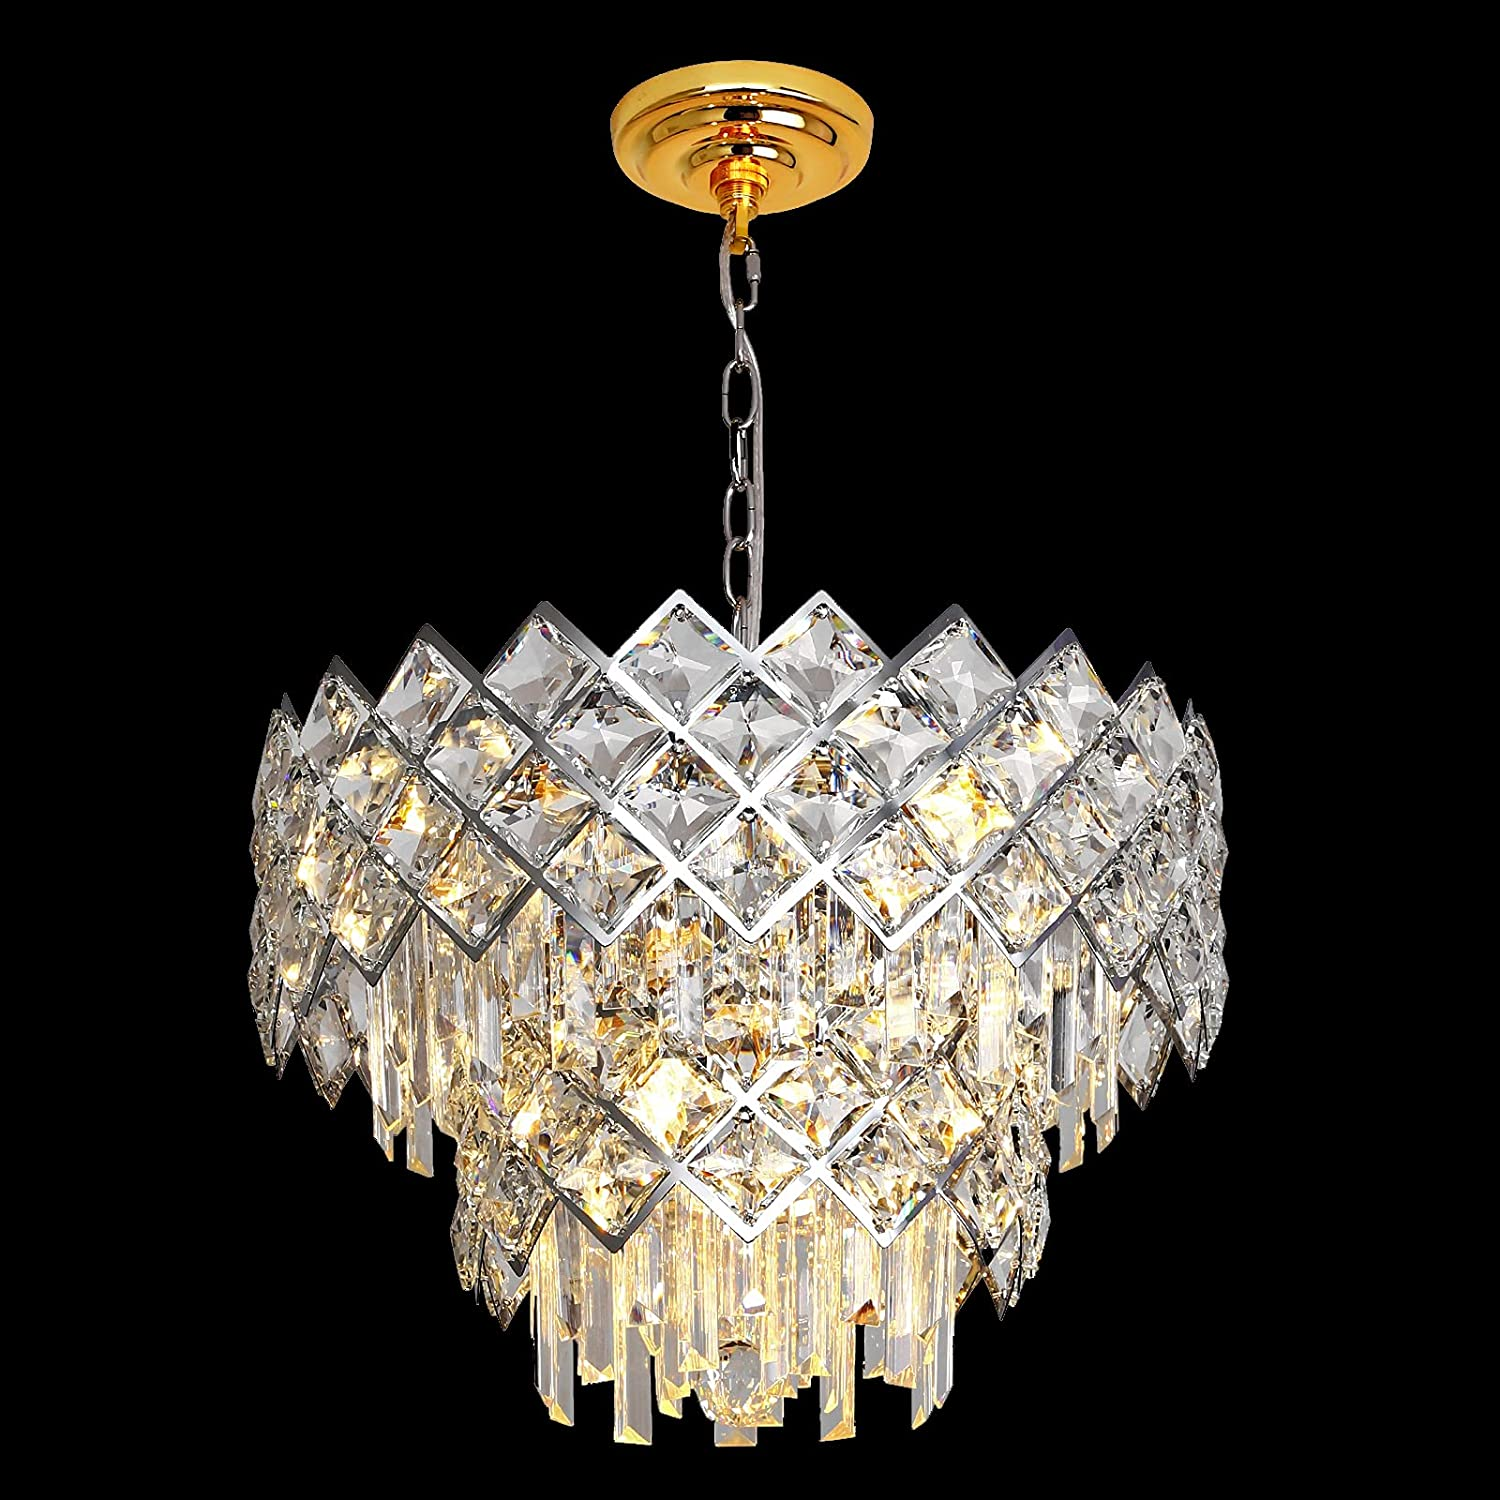 Modern Crystal Chandelier 2021new shipping free shipping 6-Lights Selling rankings Chrome Round Raindro